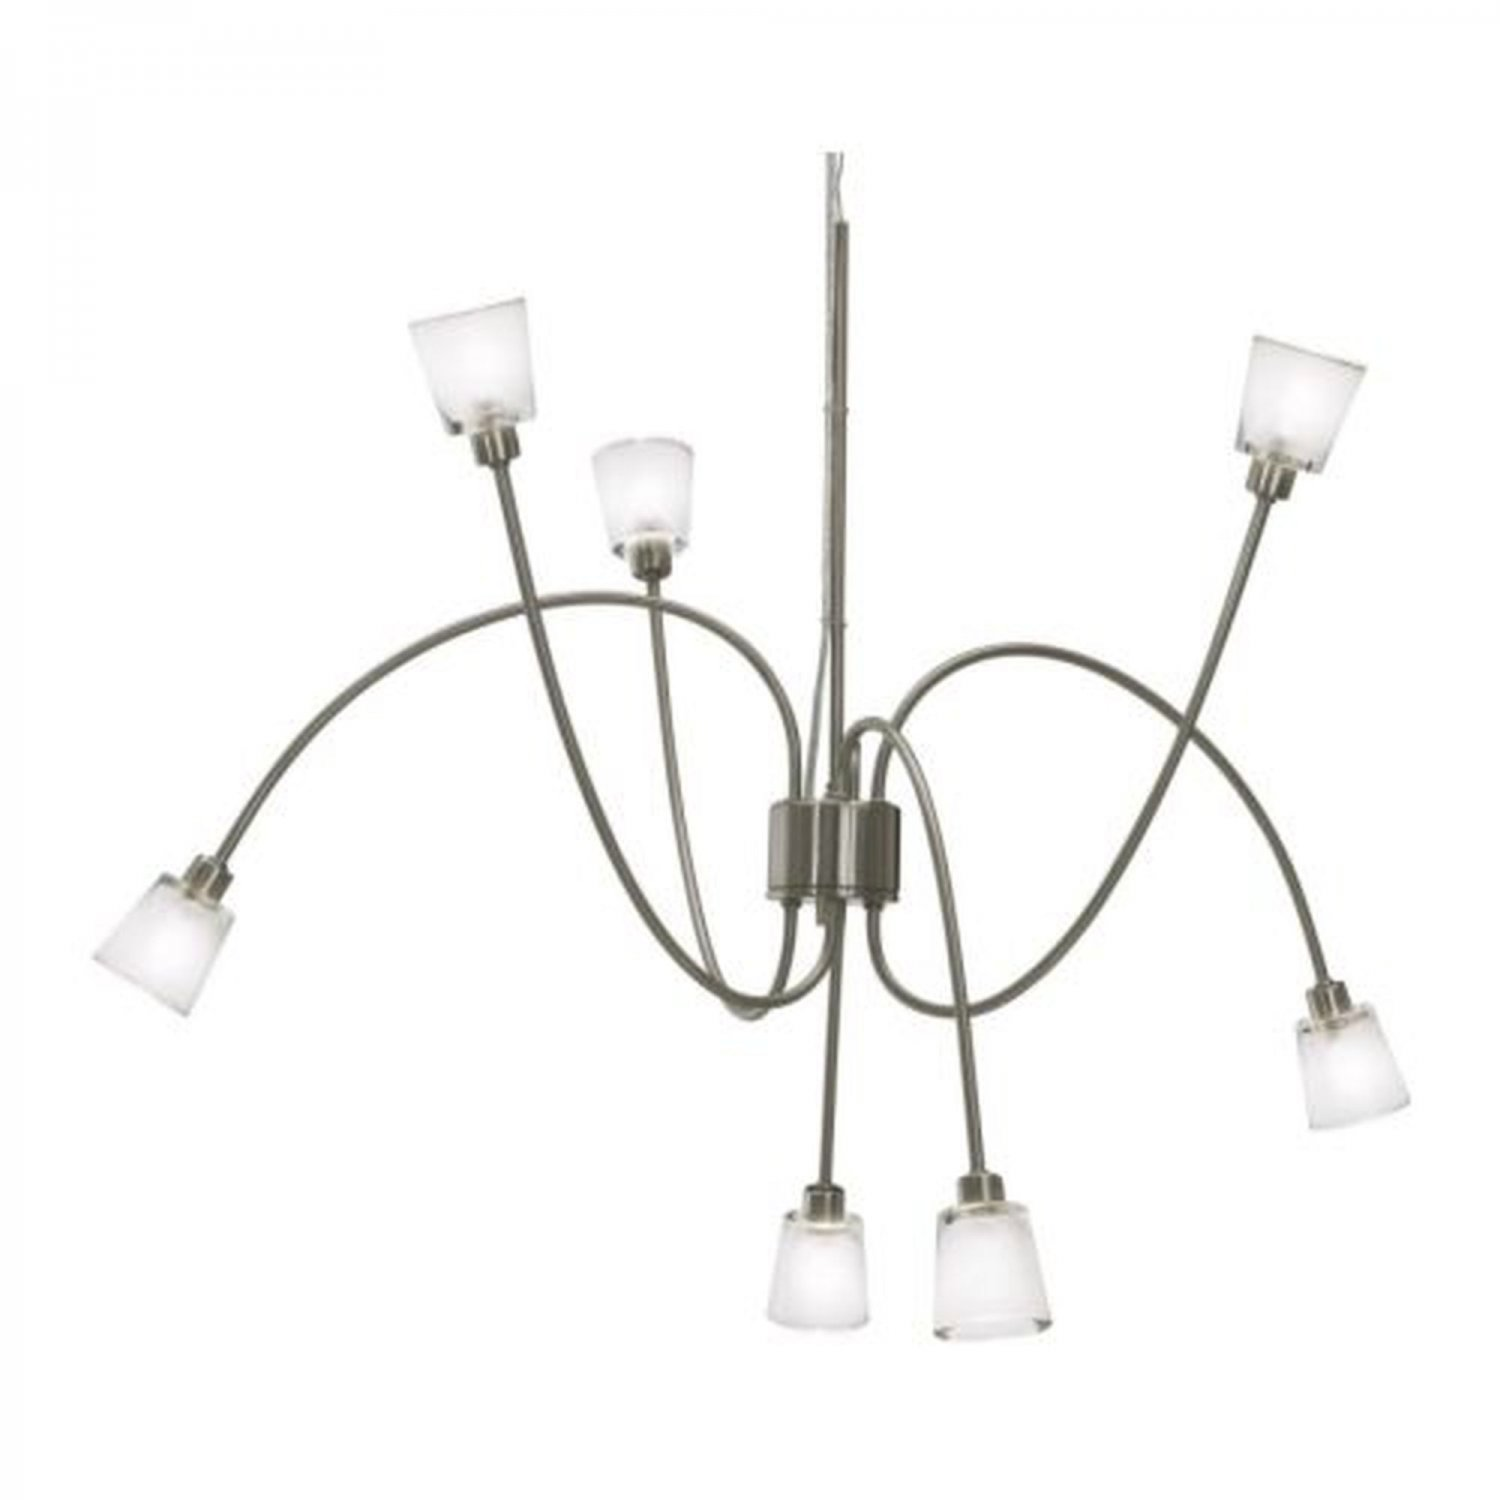 Ikea Kryssbo Chandelier Light Pendant Lamp Glass Nickel Steel Adjustable 7 Arm